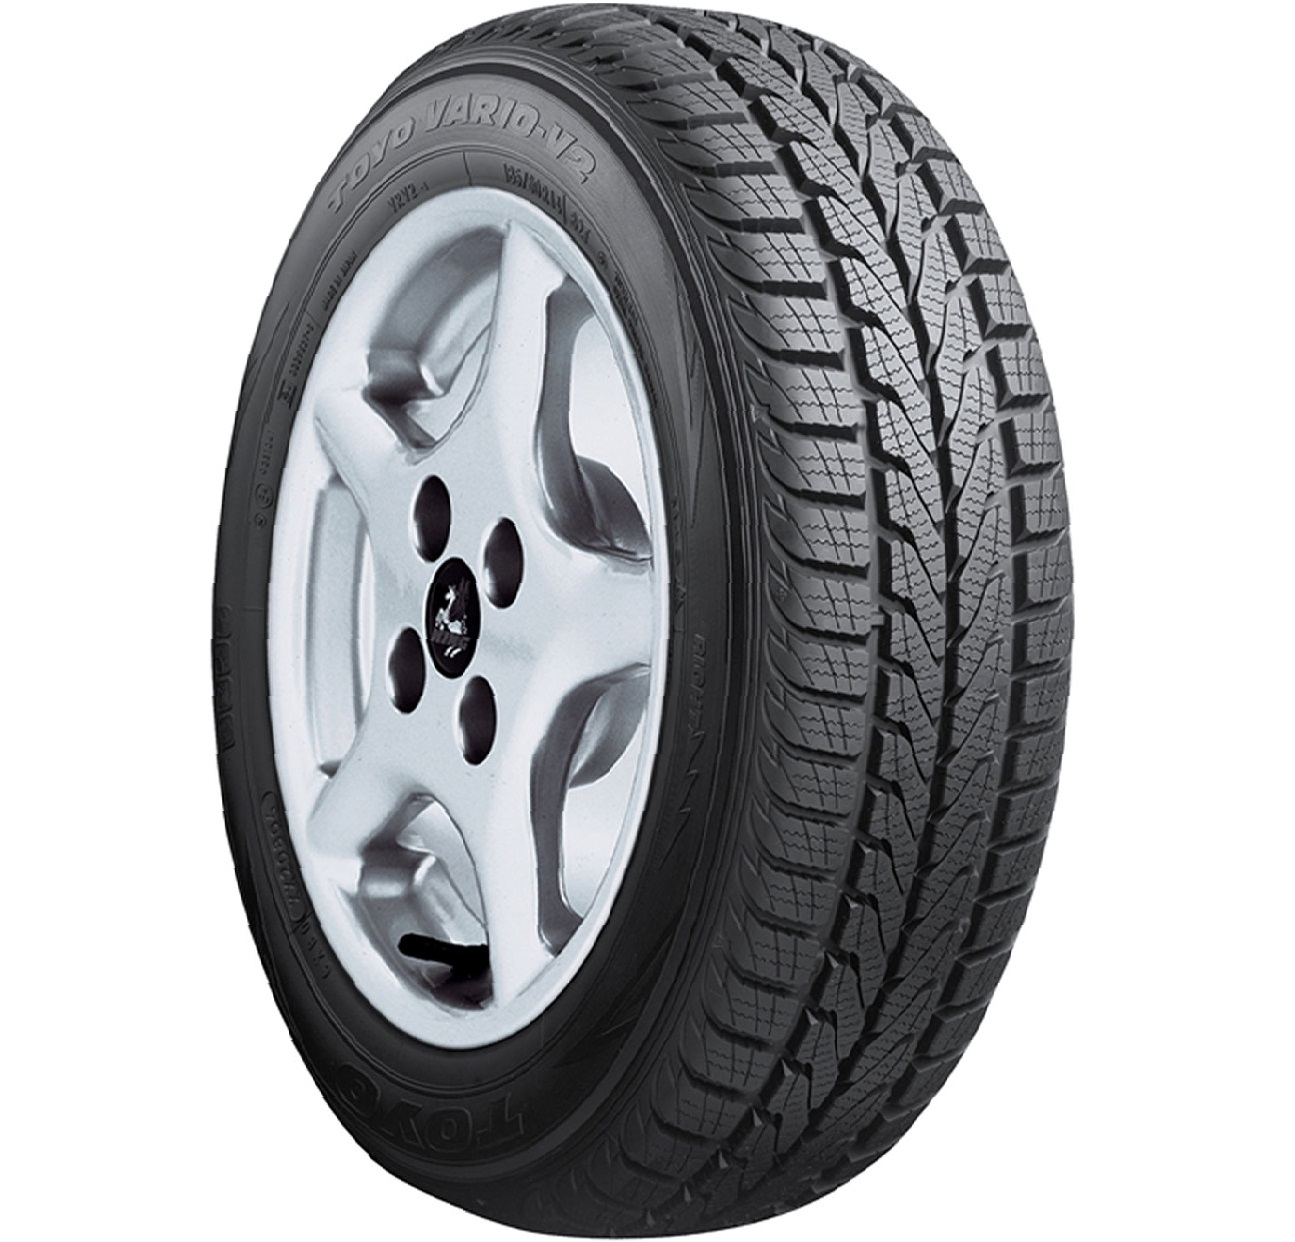 Anvelopa All Seasons Toyo 205/55r16